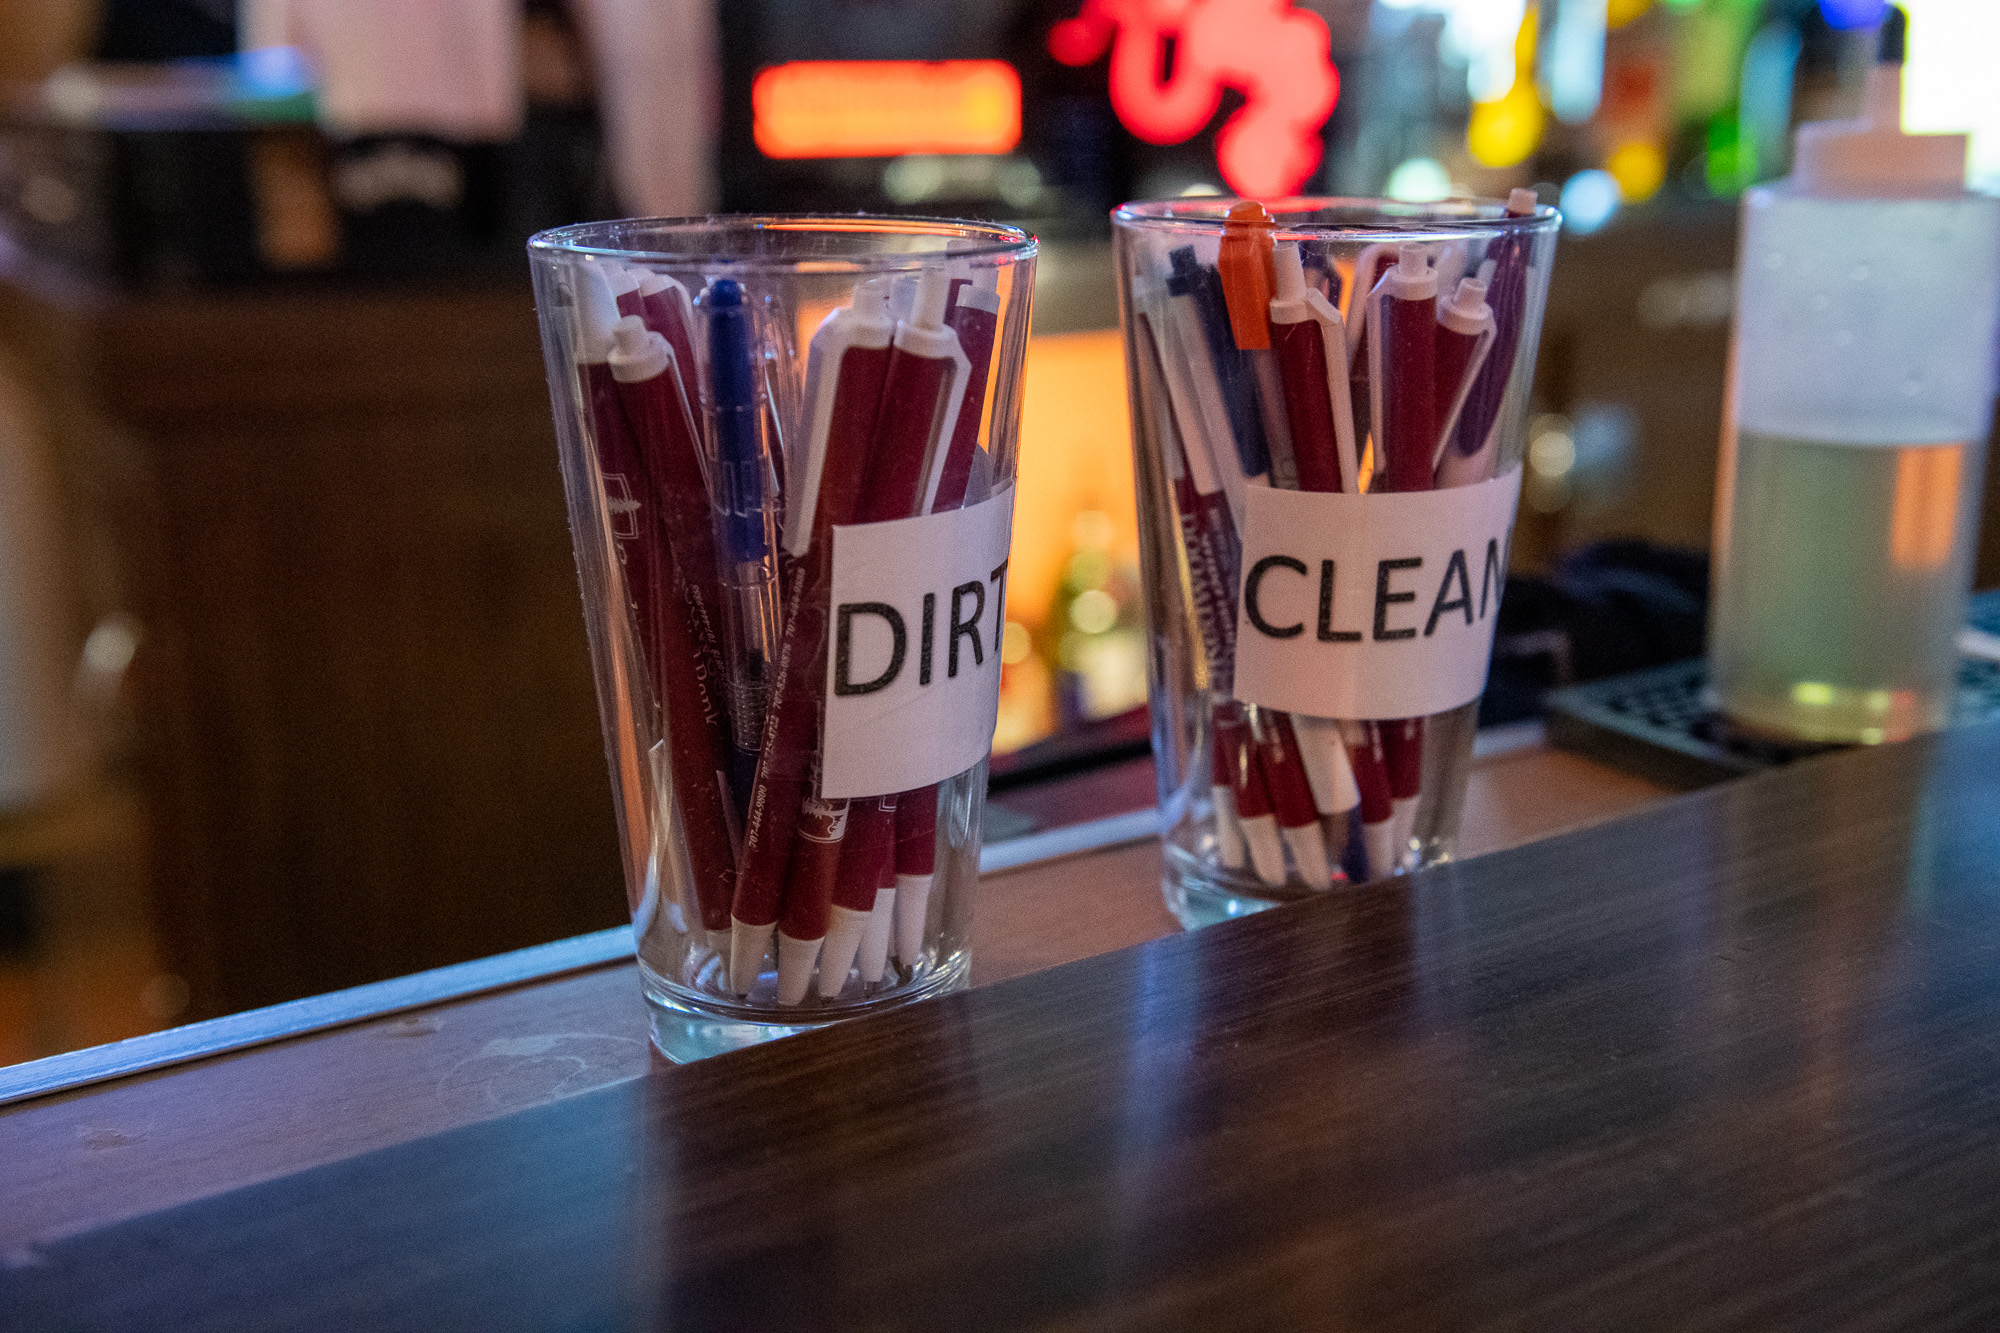 AA Bar and Grill in Eureka had cups for clean and dirty pens on the bar on the first night they reopened for dine-in--last Friday night.